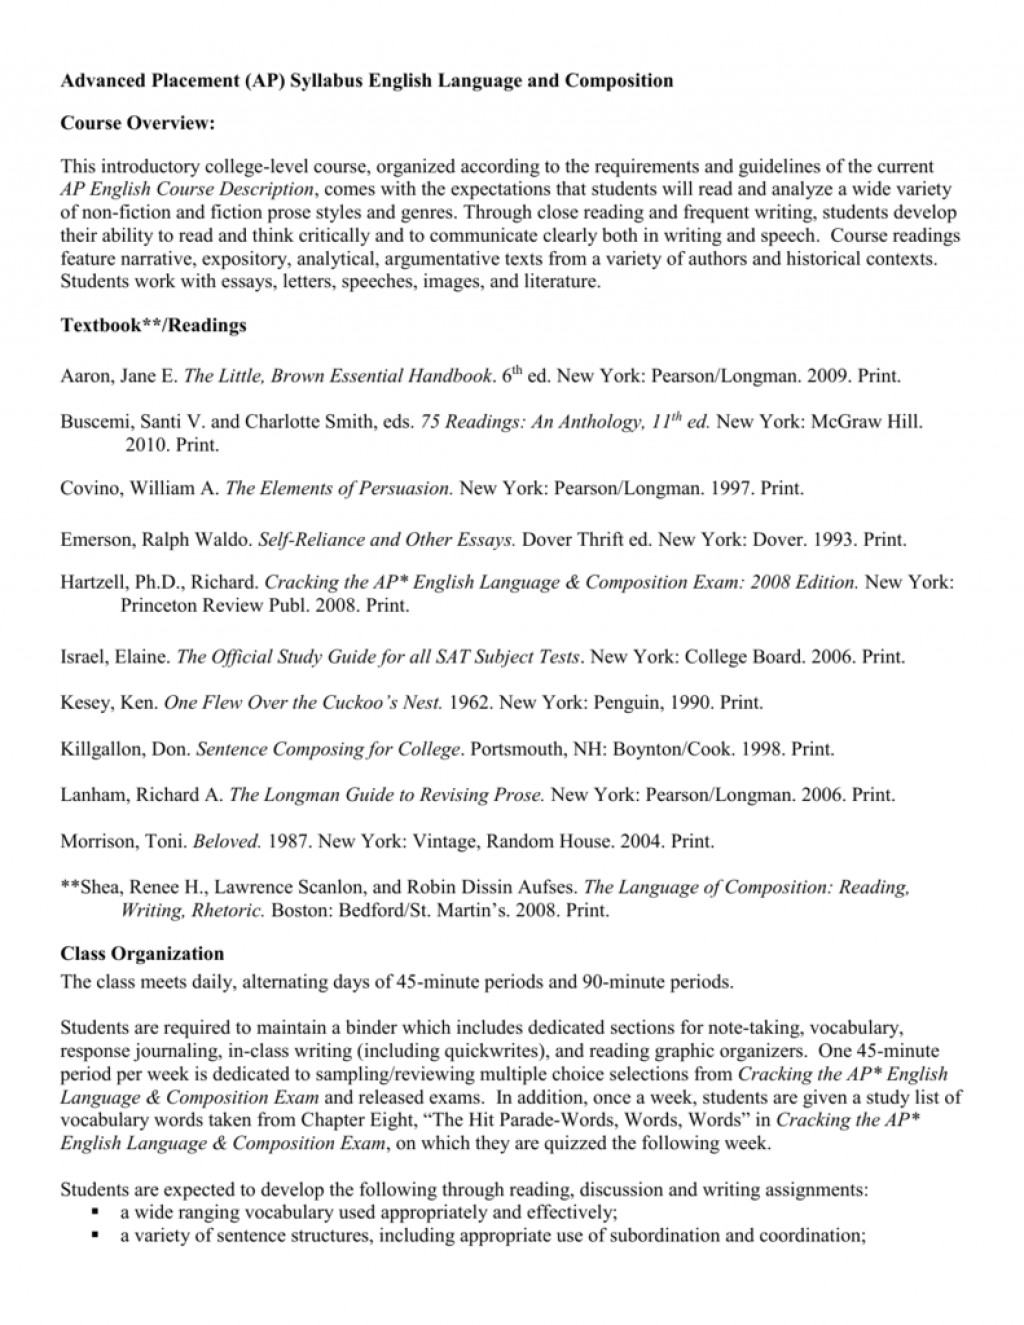 010 Ap Lang Synthesisy Prompt Research Paper Service College Board Prompts 008033003 1 Us History Writing Argumentative Sat Literature Fearsome Synthesis Essay 2017 Locavore Examples Large